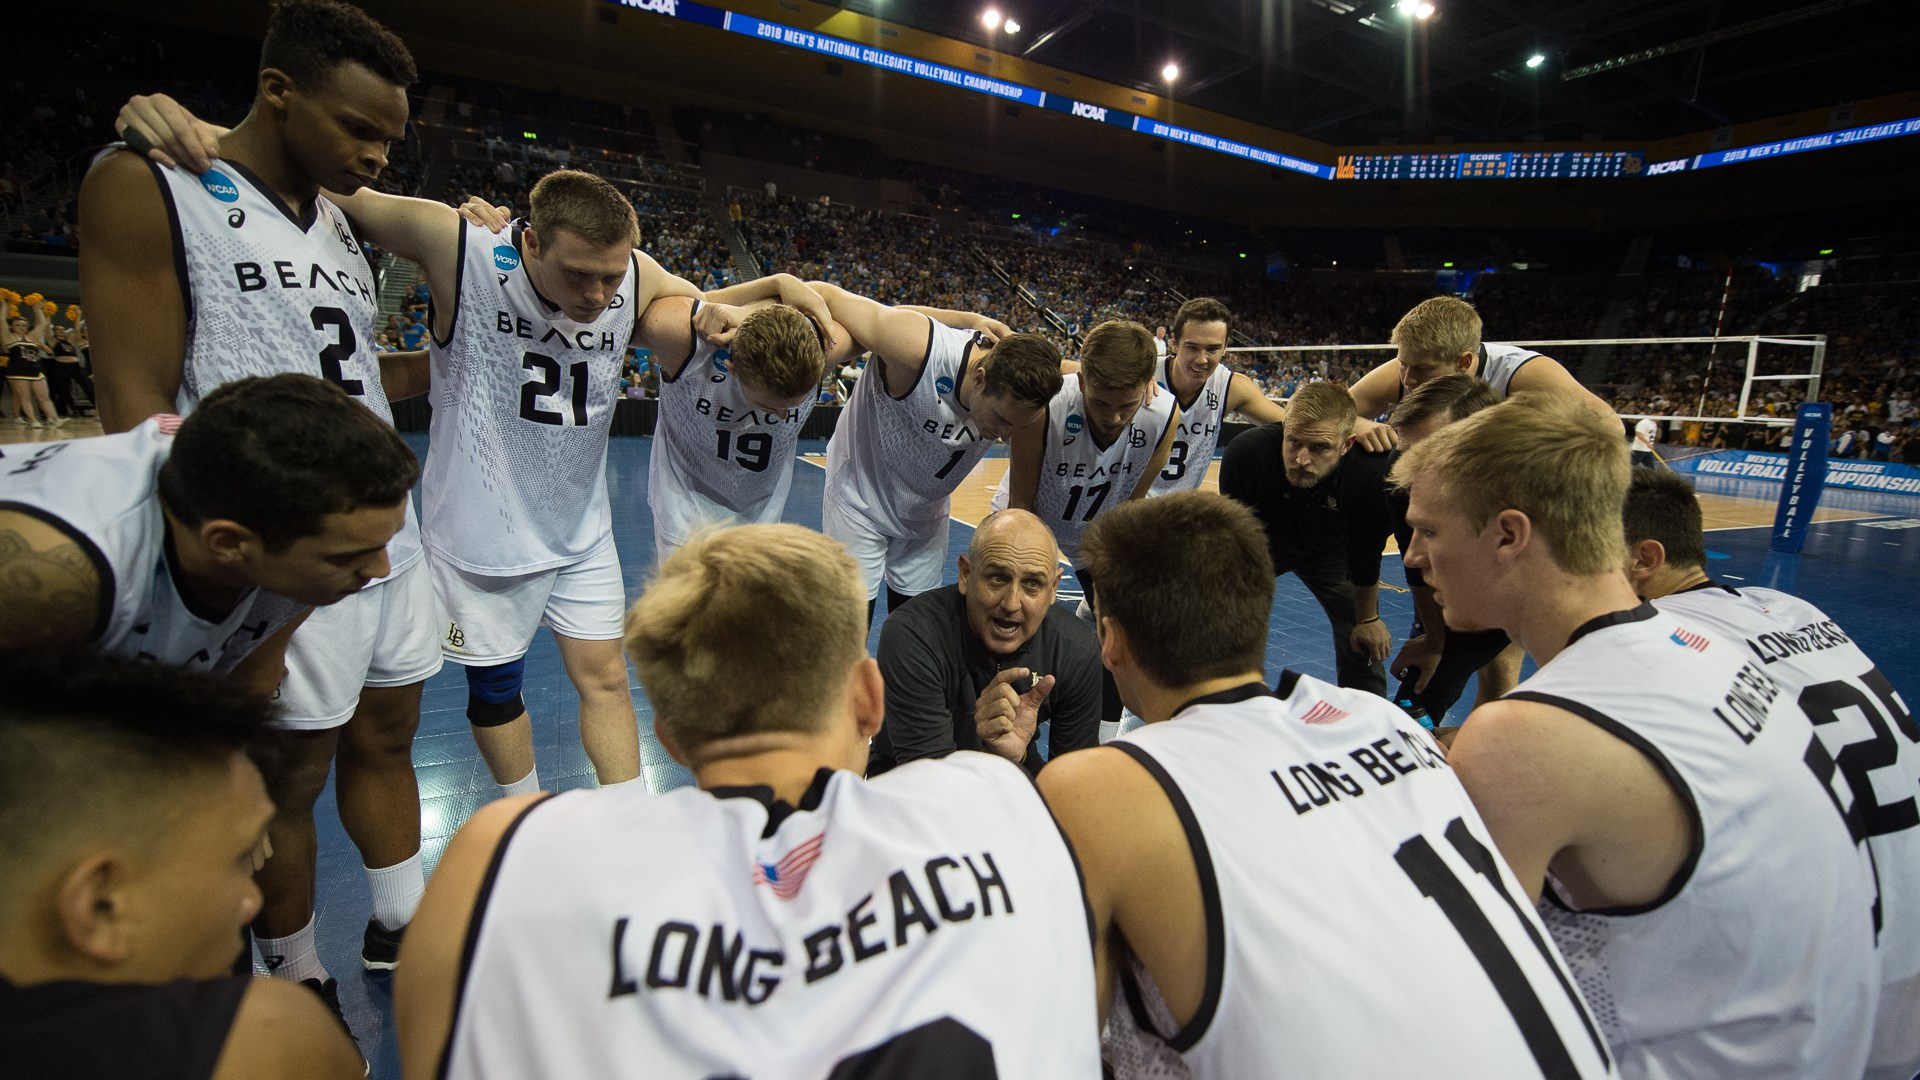 0915c901bab8 Long Beach State Men s Volleyball Announces 2019 Schedule - Long ...